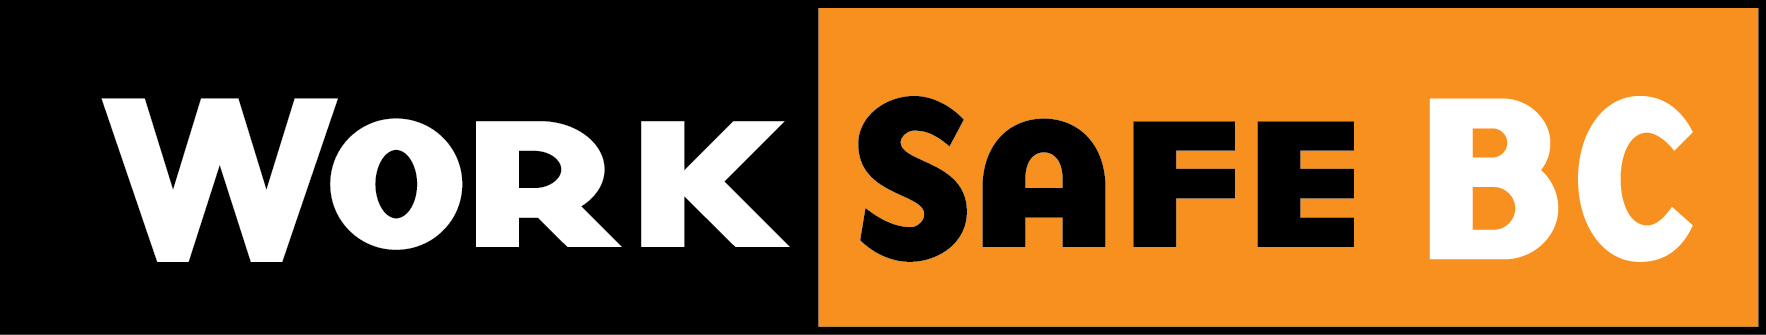 worksafe logo.jpg